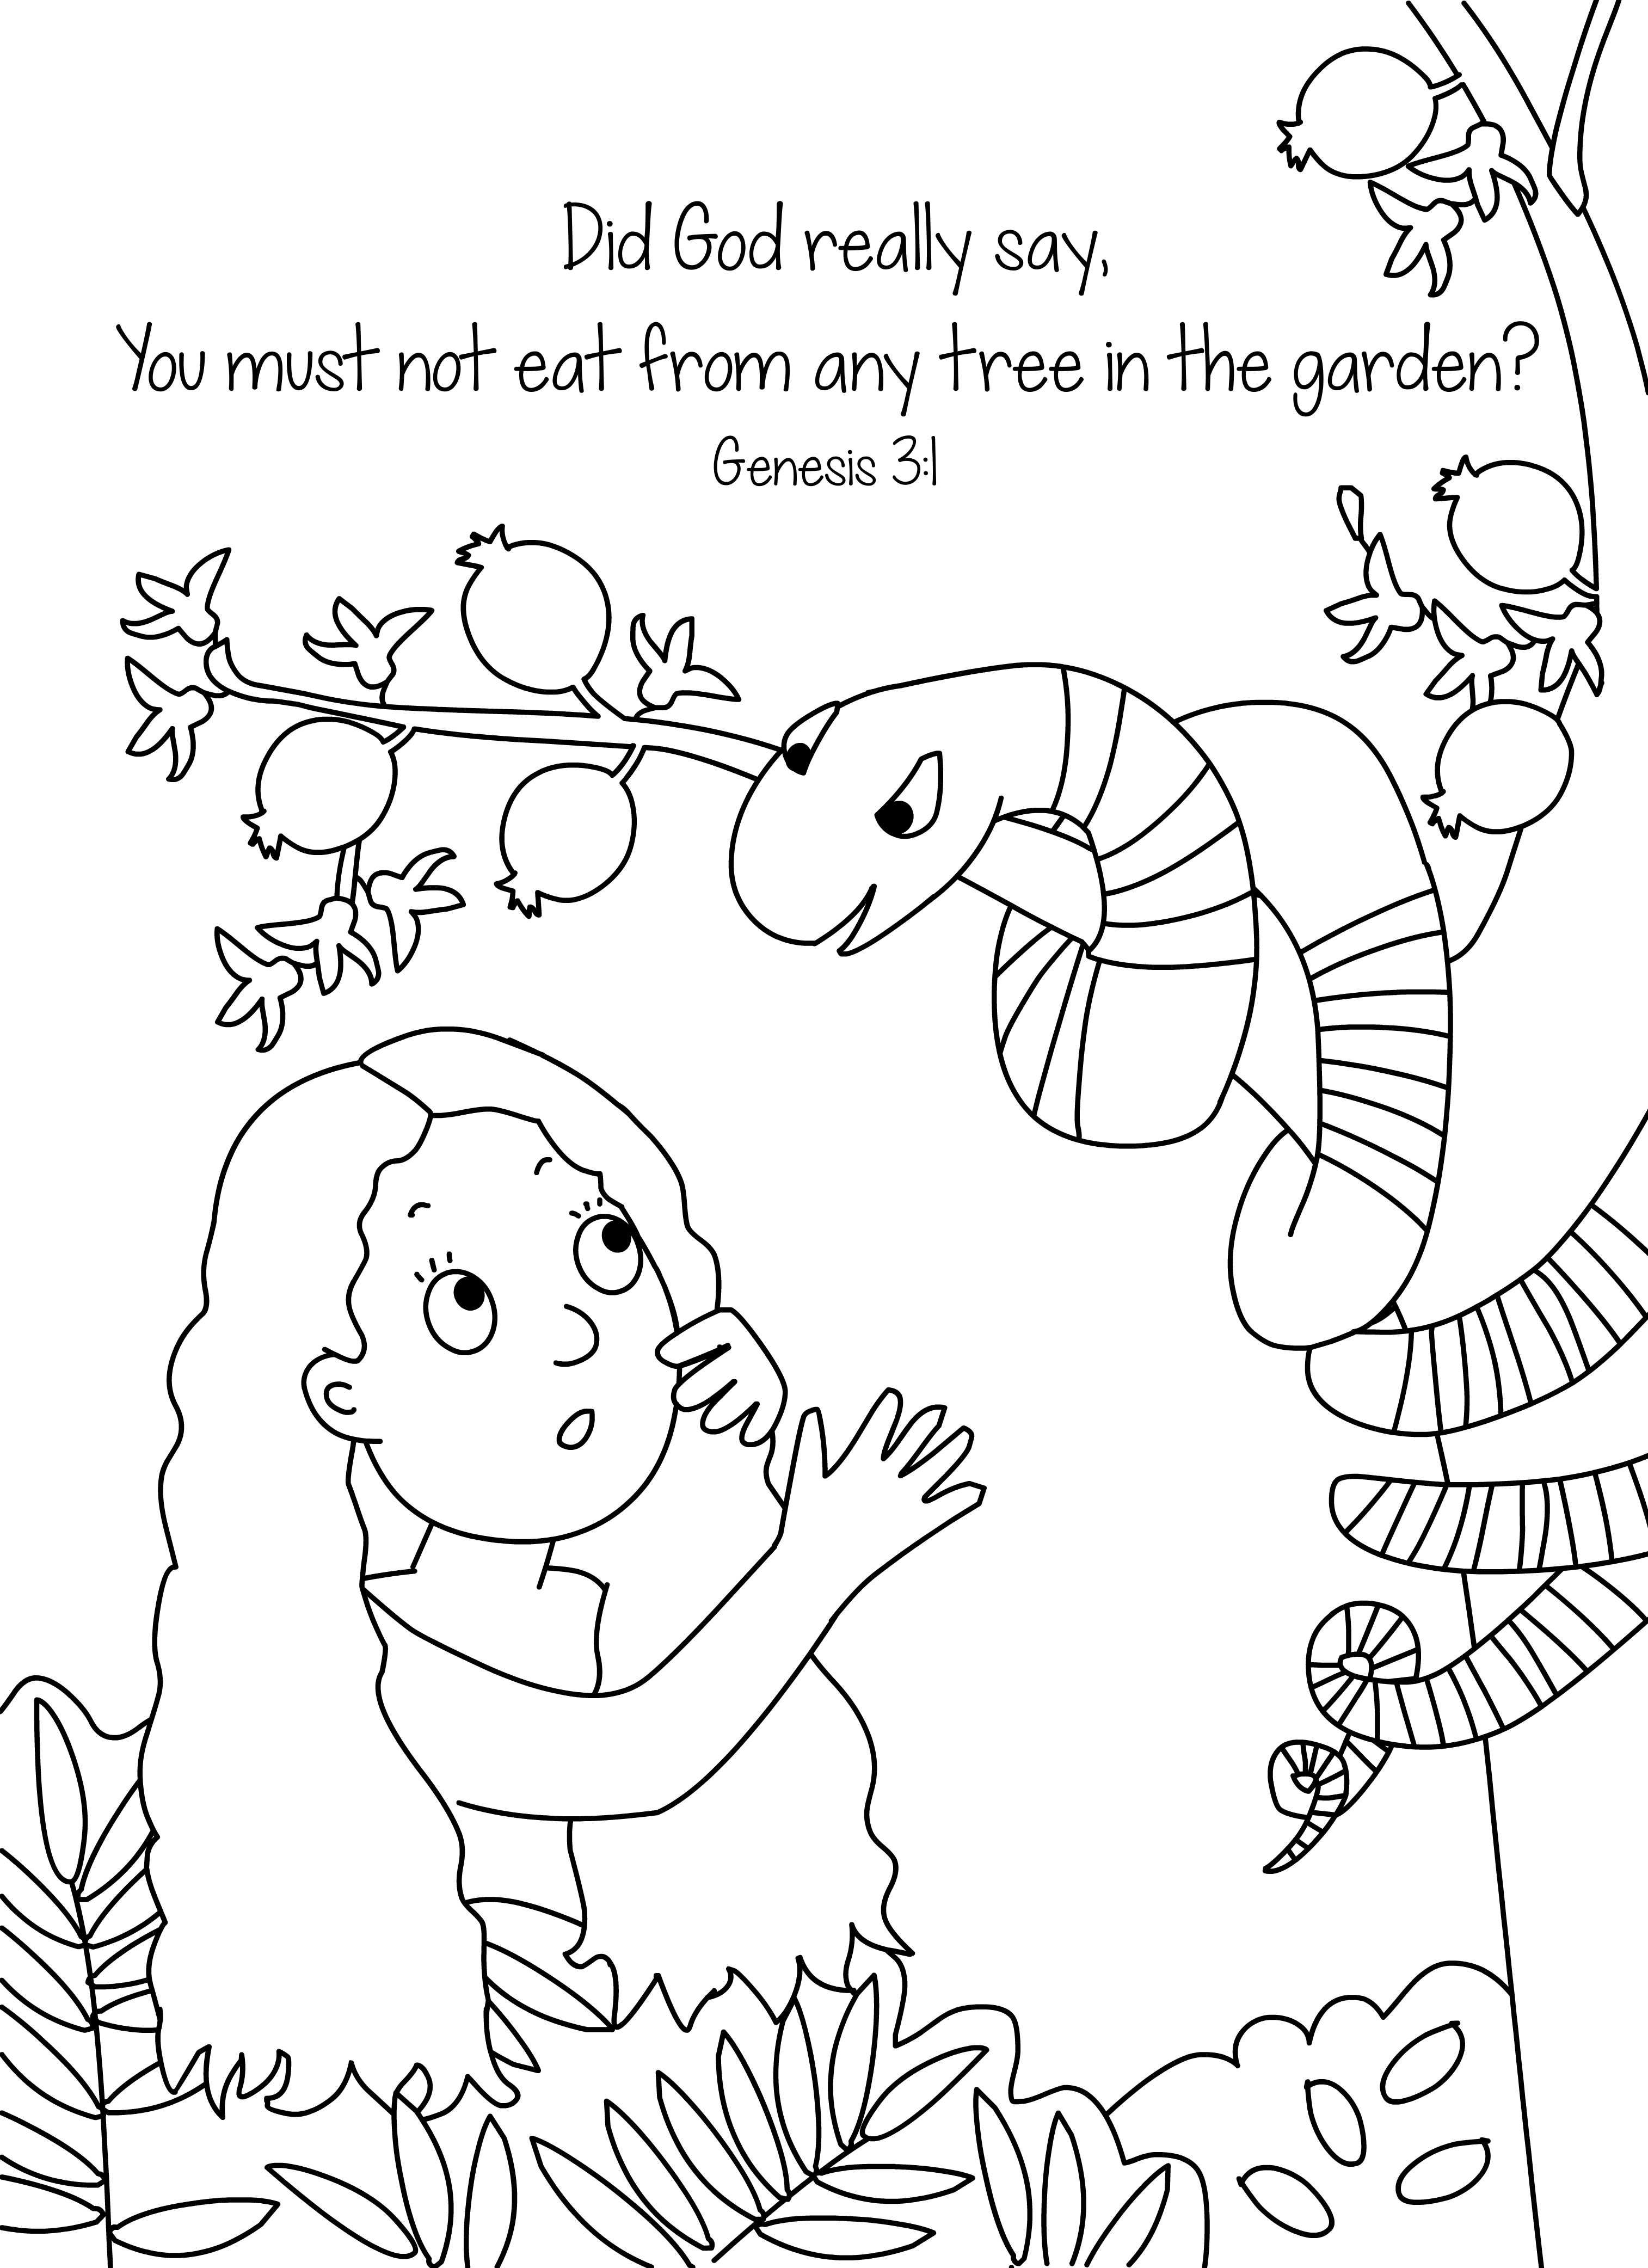 coloring page adam and eve adam and eve coloring page bible story coloring pages and page coloring adam eve